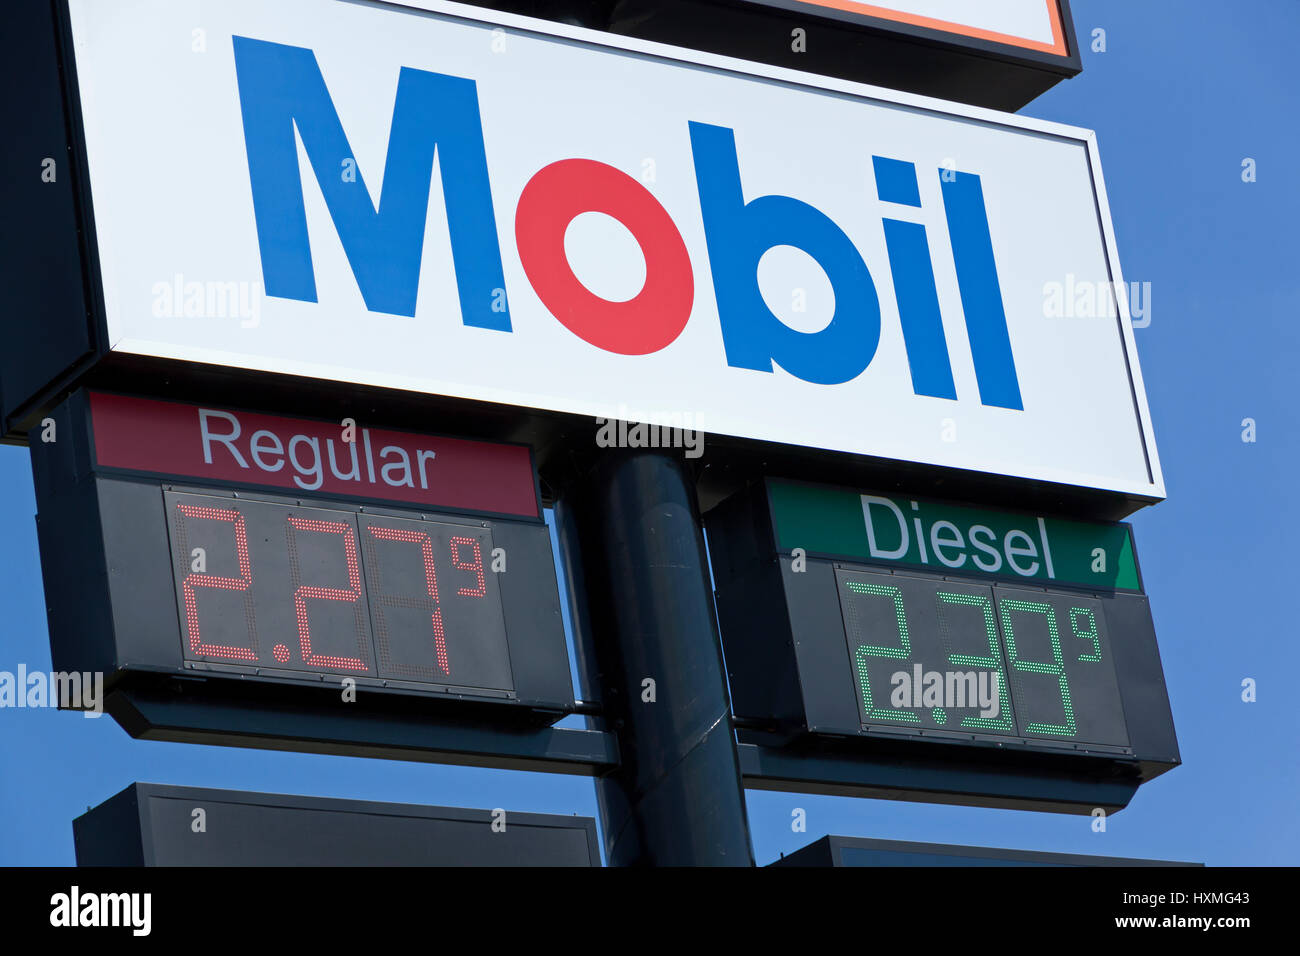 Mobil sign advertising regular and diesel low gas prices. - Stock Image